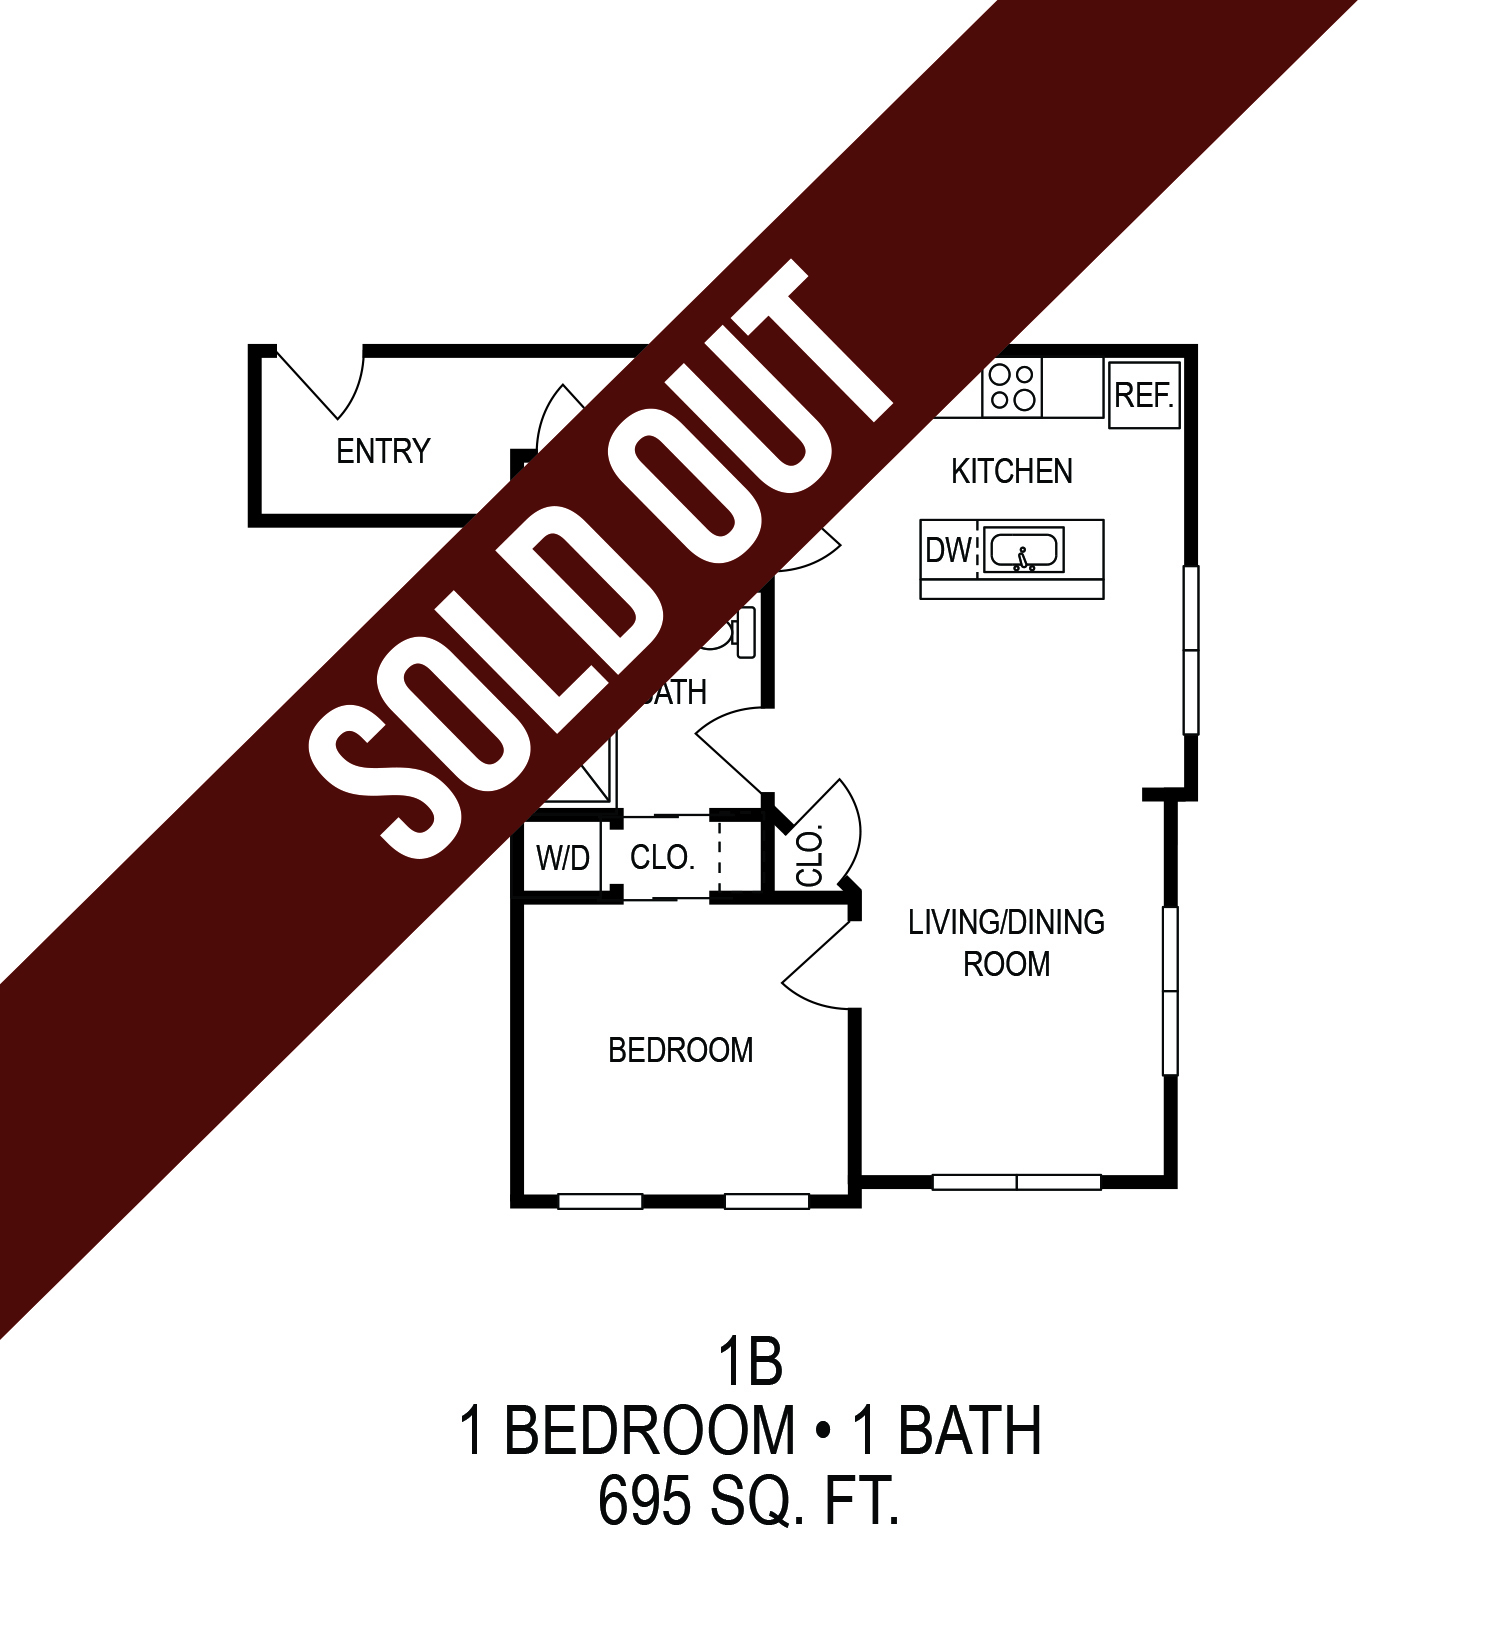 Floorplan - One Bedroom (B) image